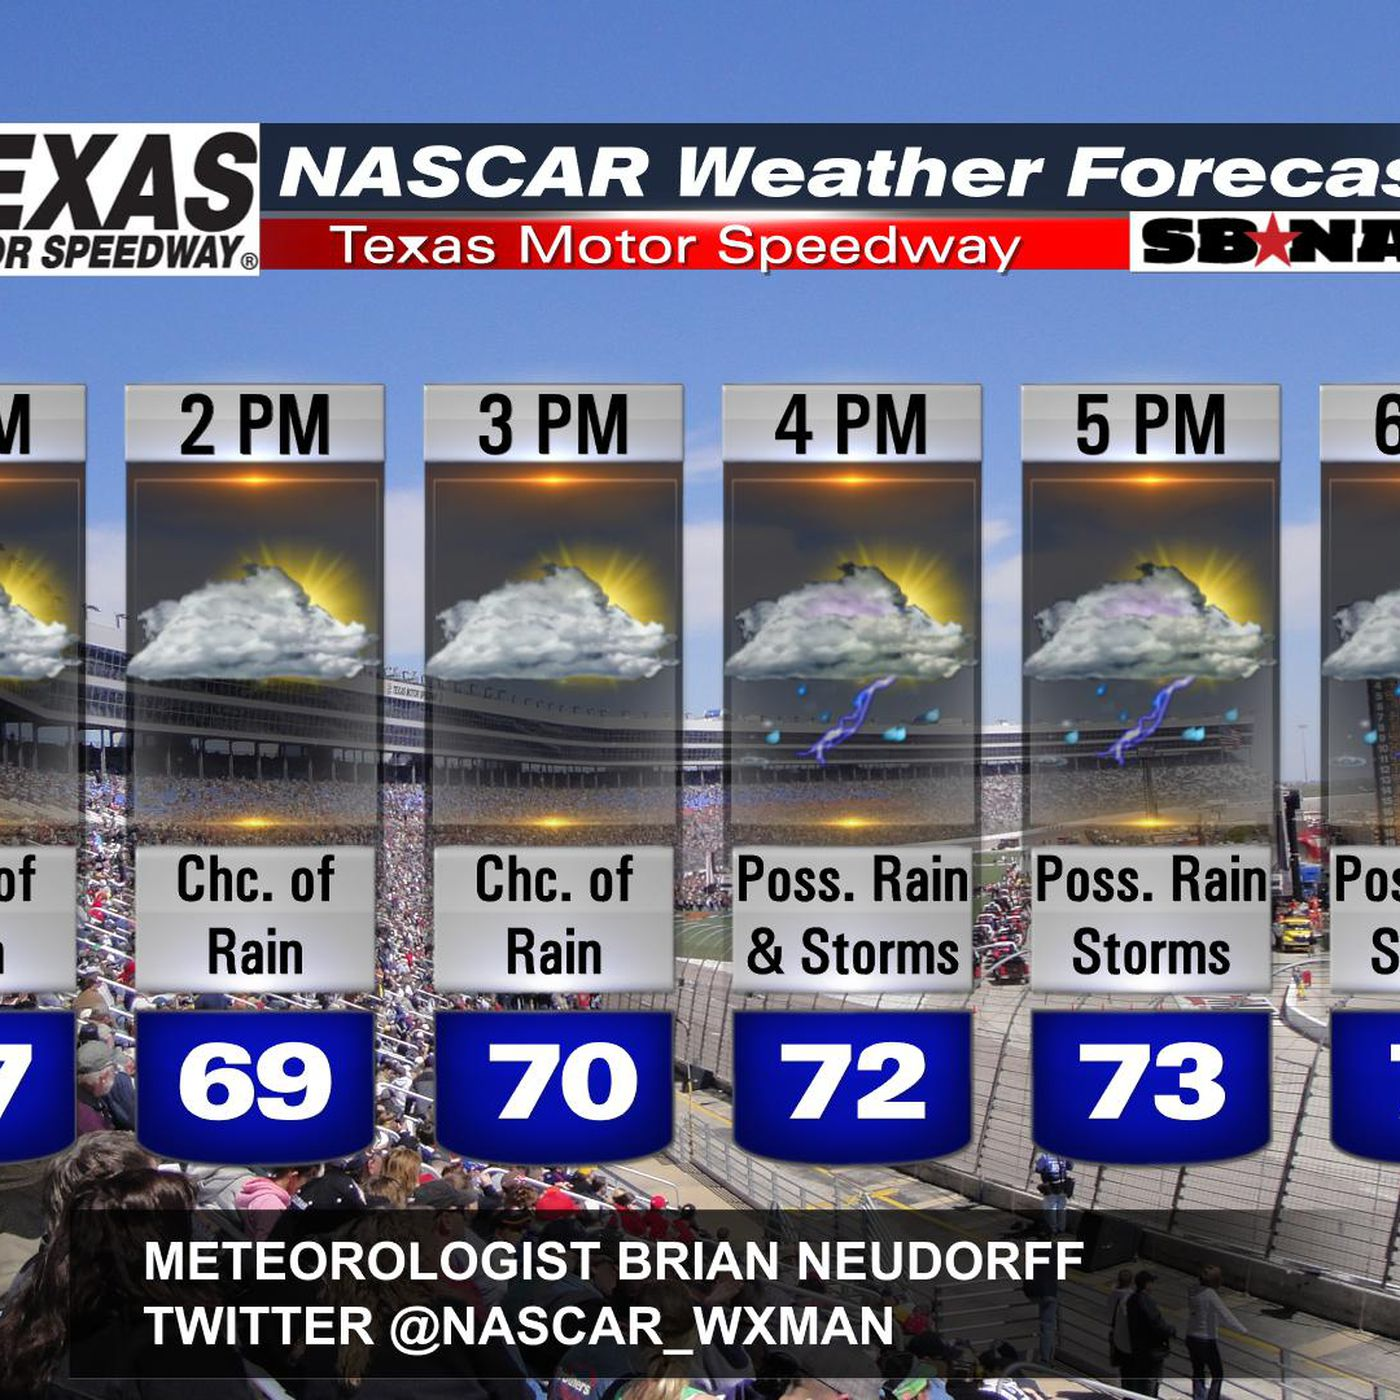 Race day weather forecast for NASCAR at Texas Motor Speedway